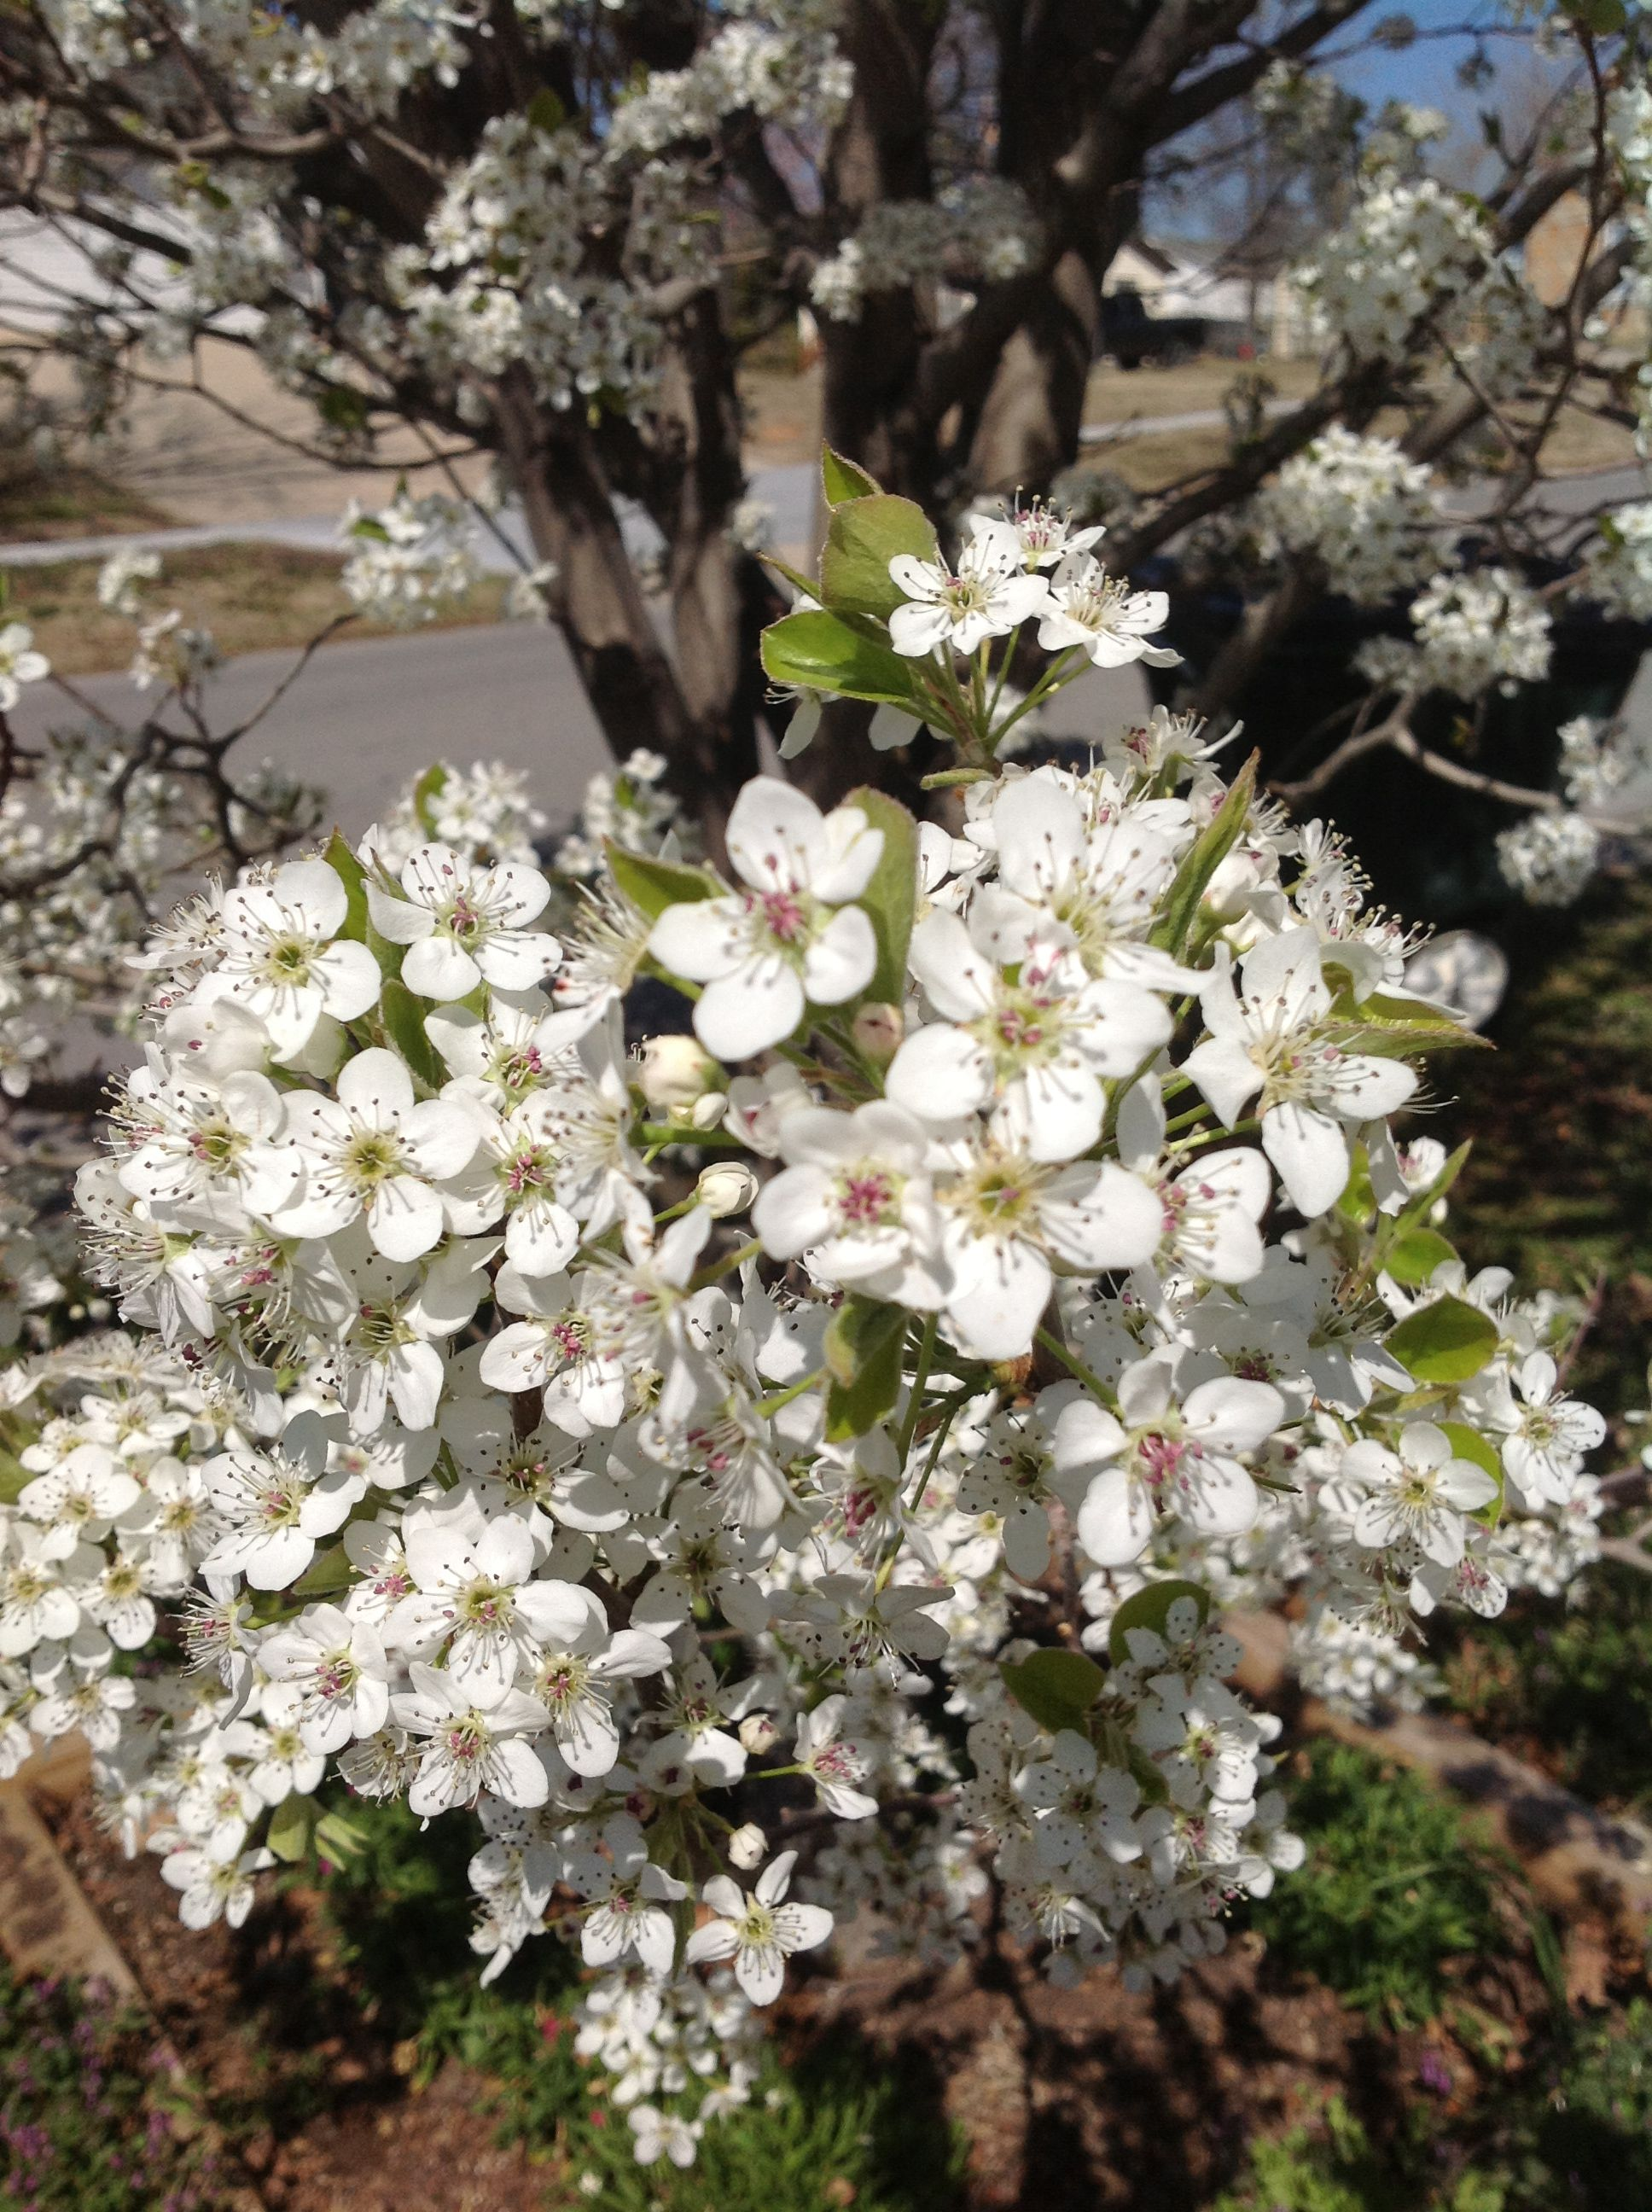 Pear tree in the month of april front yard sand springs ok pear tree in the month of april front yard sand springs ok mightylinksfo